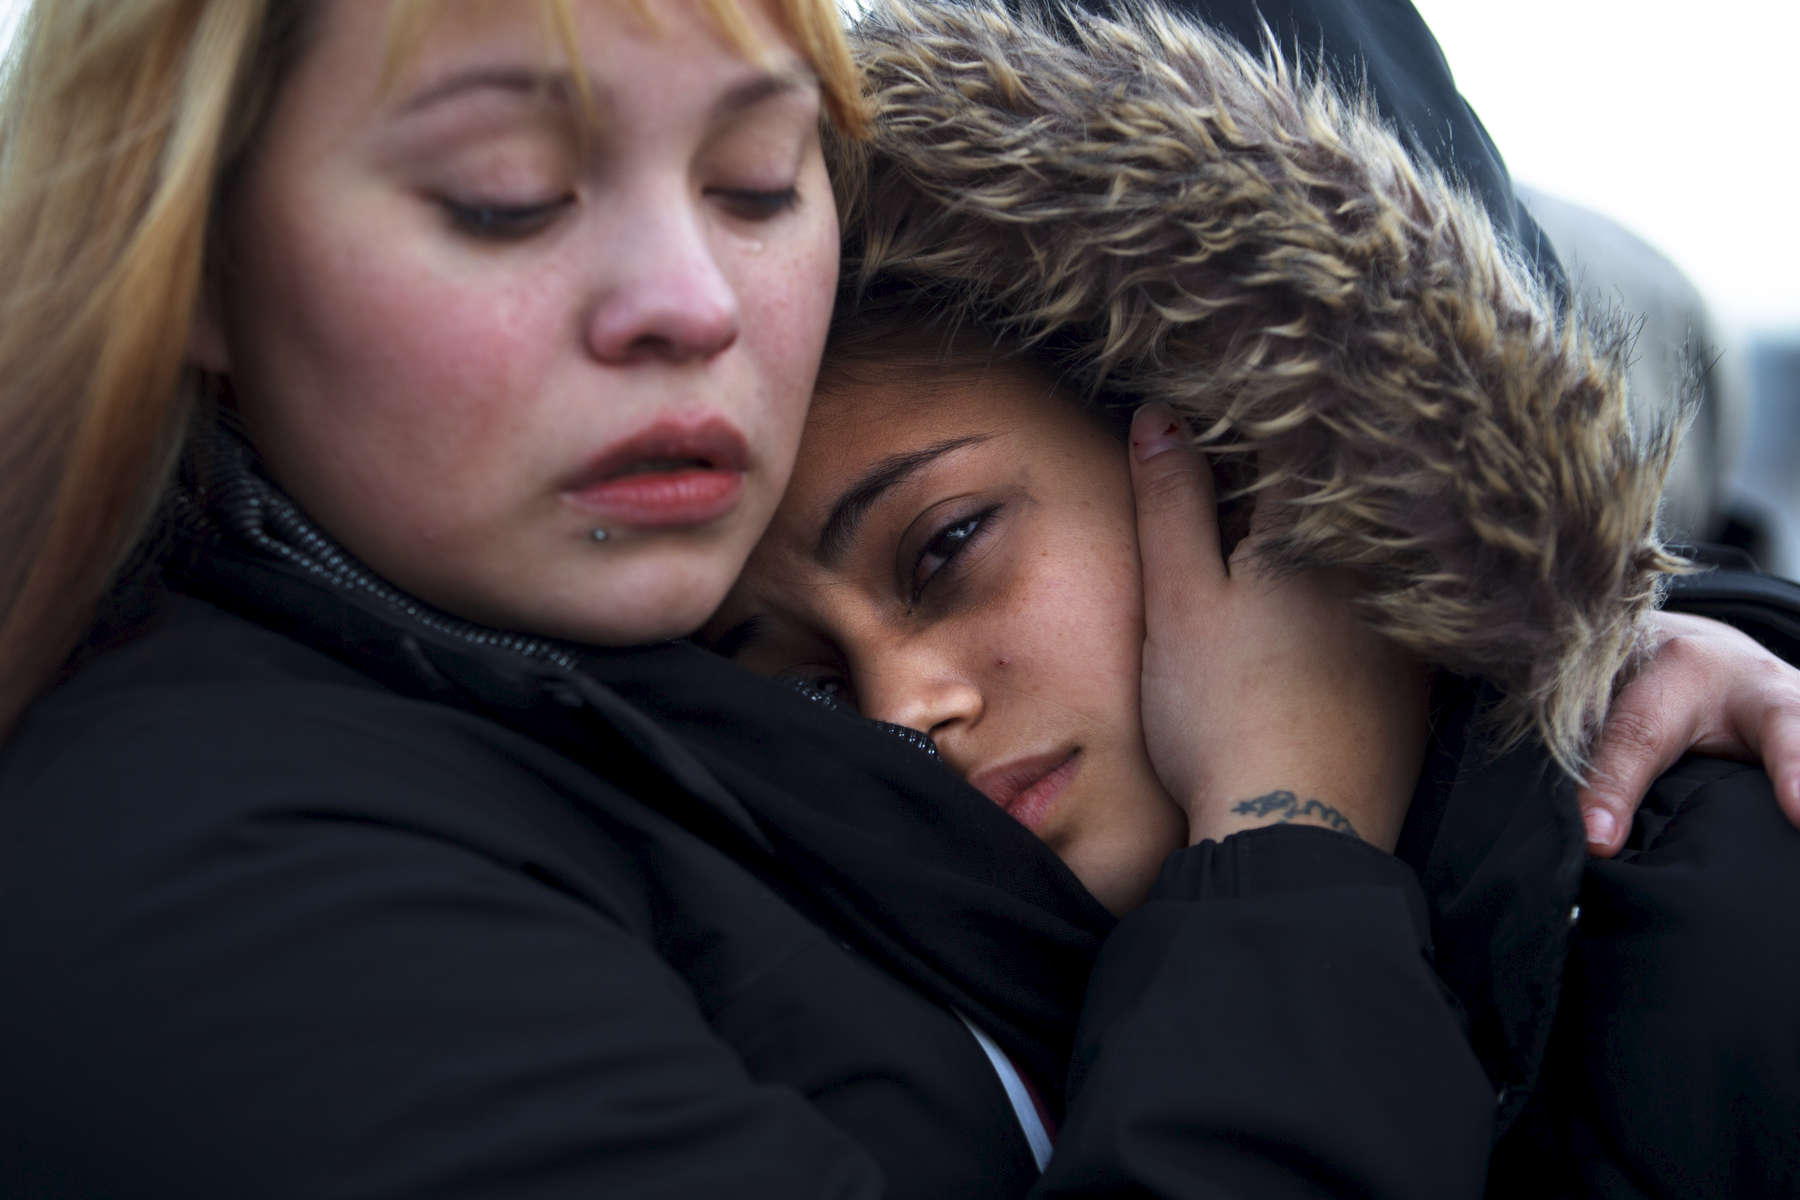 1/01/2014 - East Boston, MA - Andrew McArdle Bridge - Stephanie Ruiz, cq, left, comforted Nancy Garcia, cq, whose mother, Aura Garcia, was crushed to death on Tuesday, December 31, 2013 by the Andrew McArdle bridge in East Boston. {quote}She was basically like my mother,{quote} said Ruiz. {quote}What we want is justice,{quote} added Ruiz. Topic: 02bridge. Story by Meghan Irons/Globe Staff. Dina Rudick/Globe Staff